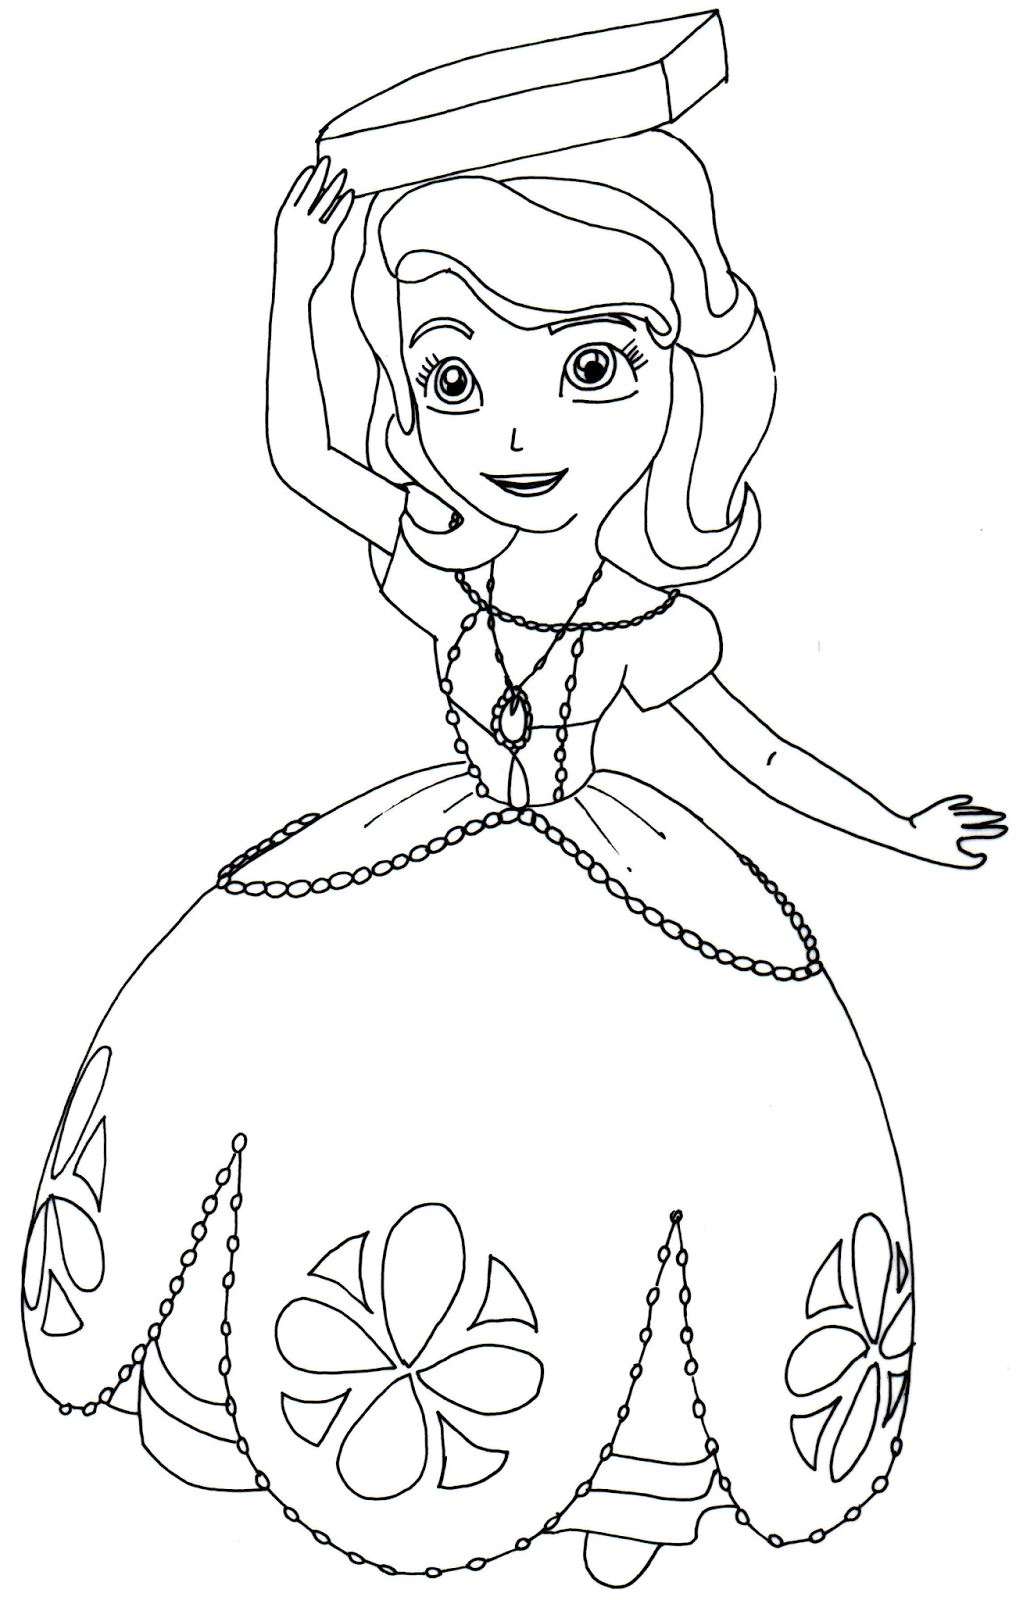 Sofia The First Coloring Pages Perfect Posture Sofia Sofia The Princess Butterfly Free Coloring Sheets